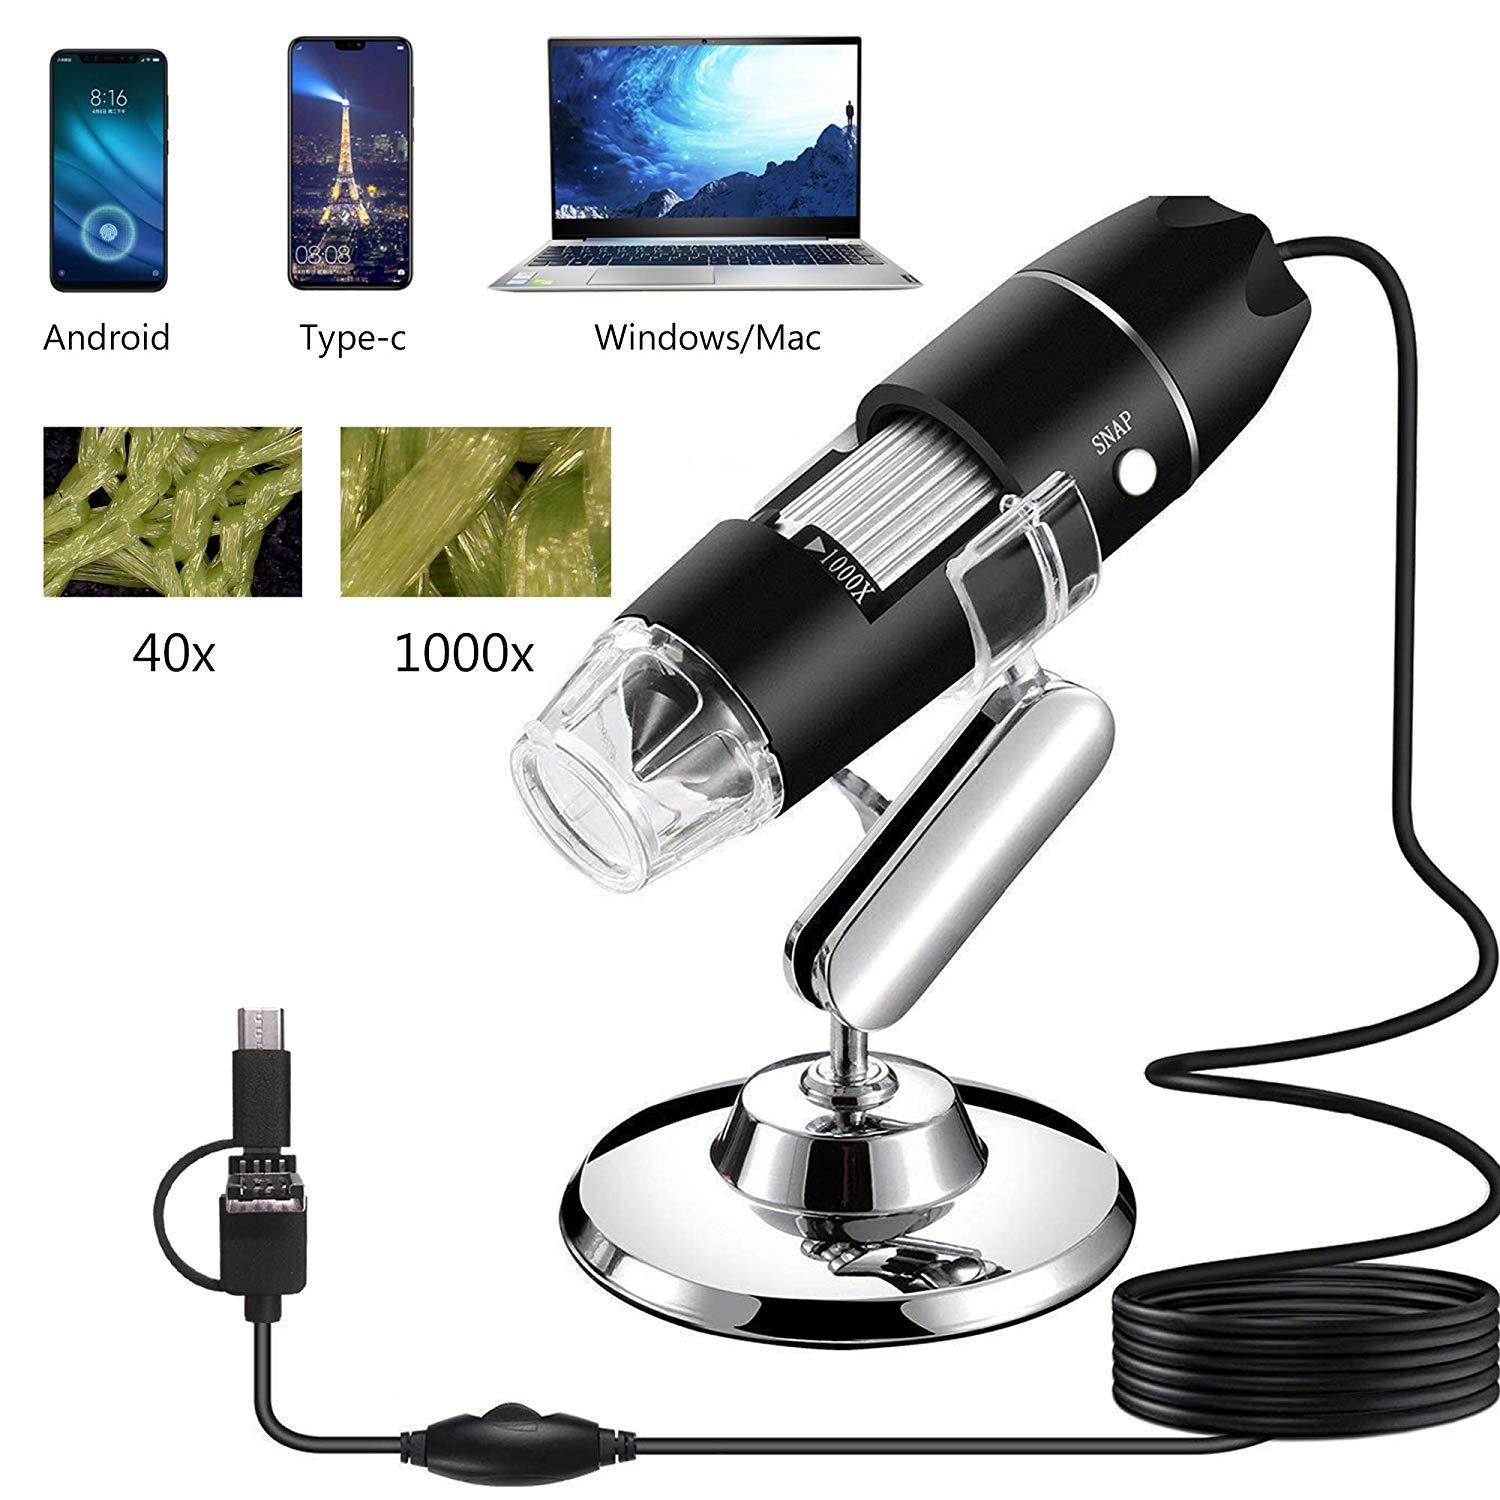 AOLOX USB Microscope, 1000x Handheld Digital Microscope Camera with 8 LED Light and Stand Hobby Tools for Kids, Students, Adults, Compatible with Mac/ Window 7/Android by AOLOX